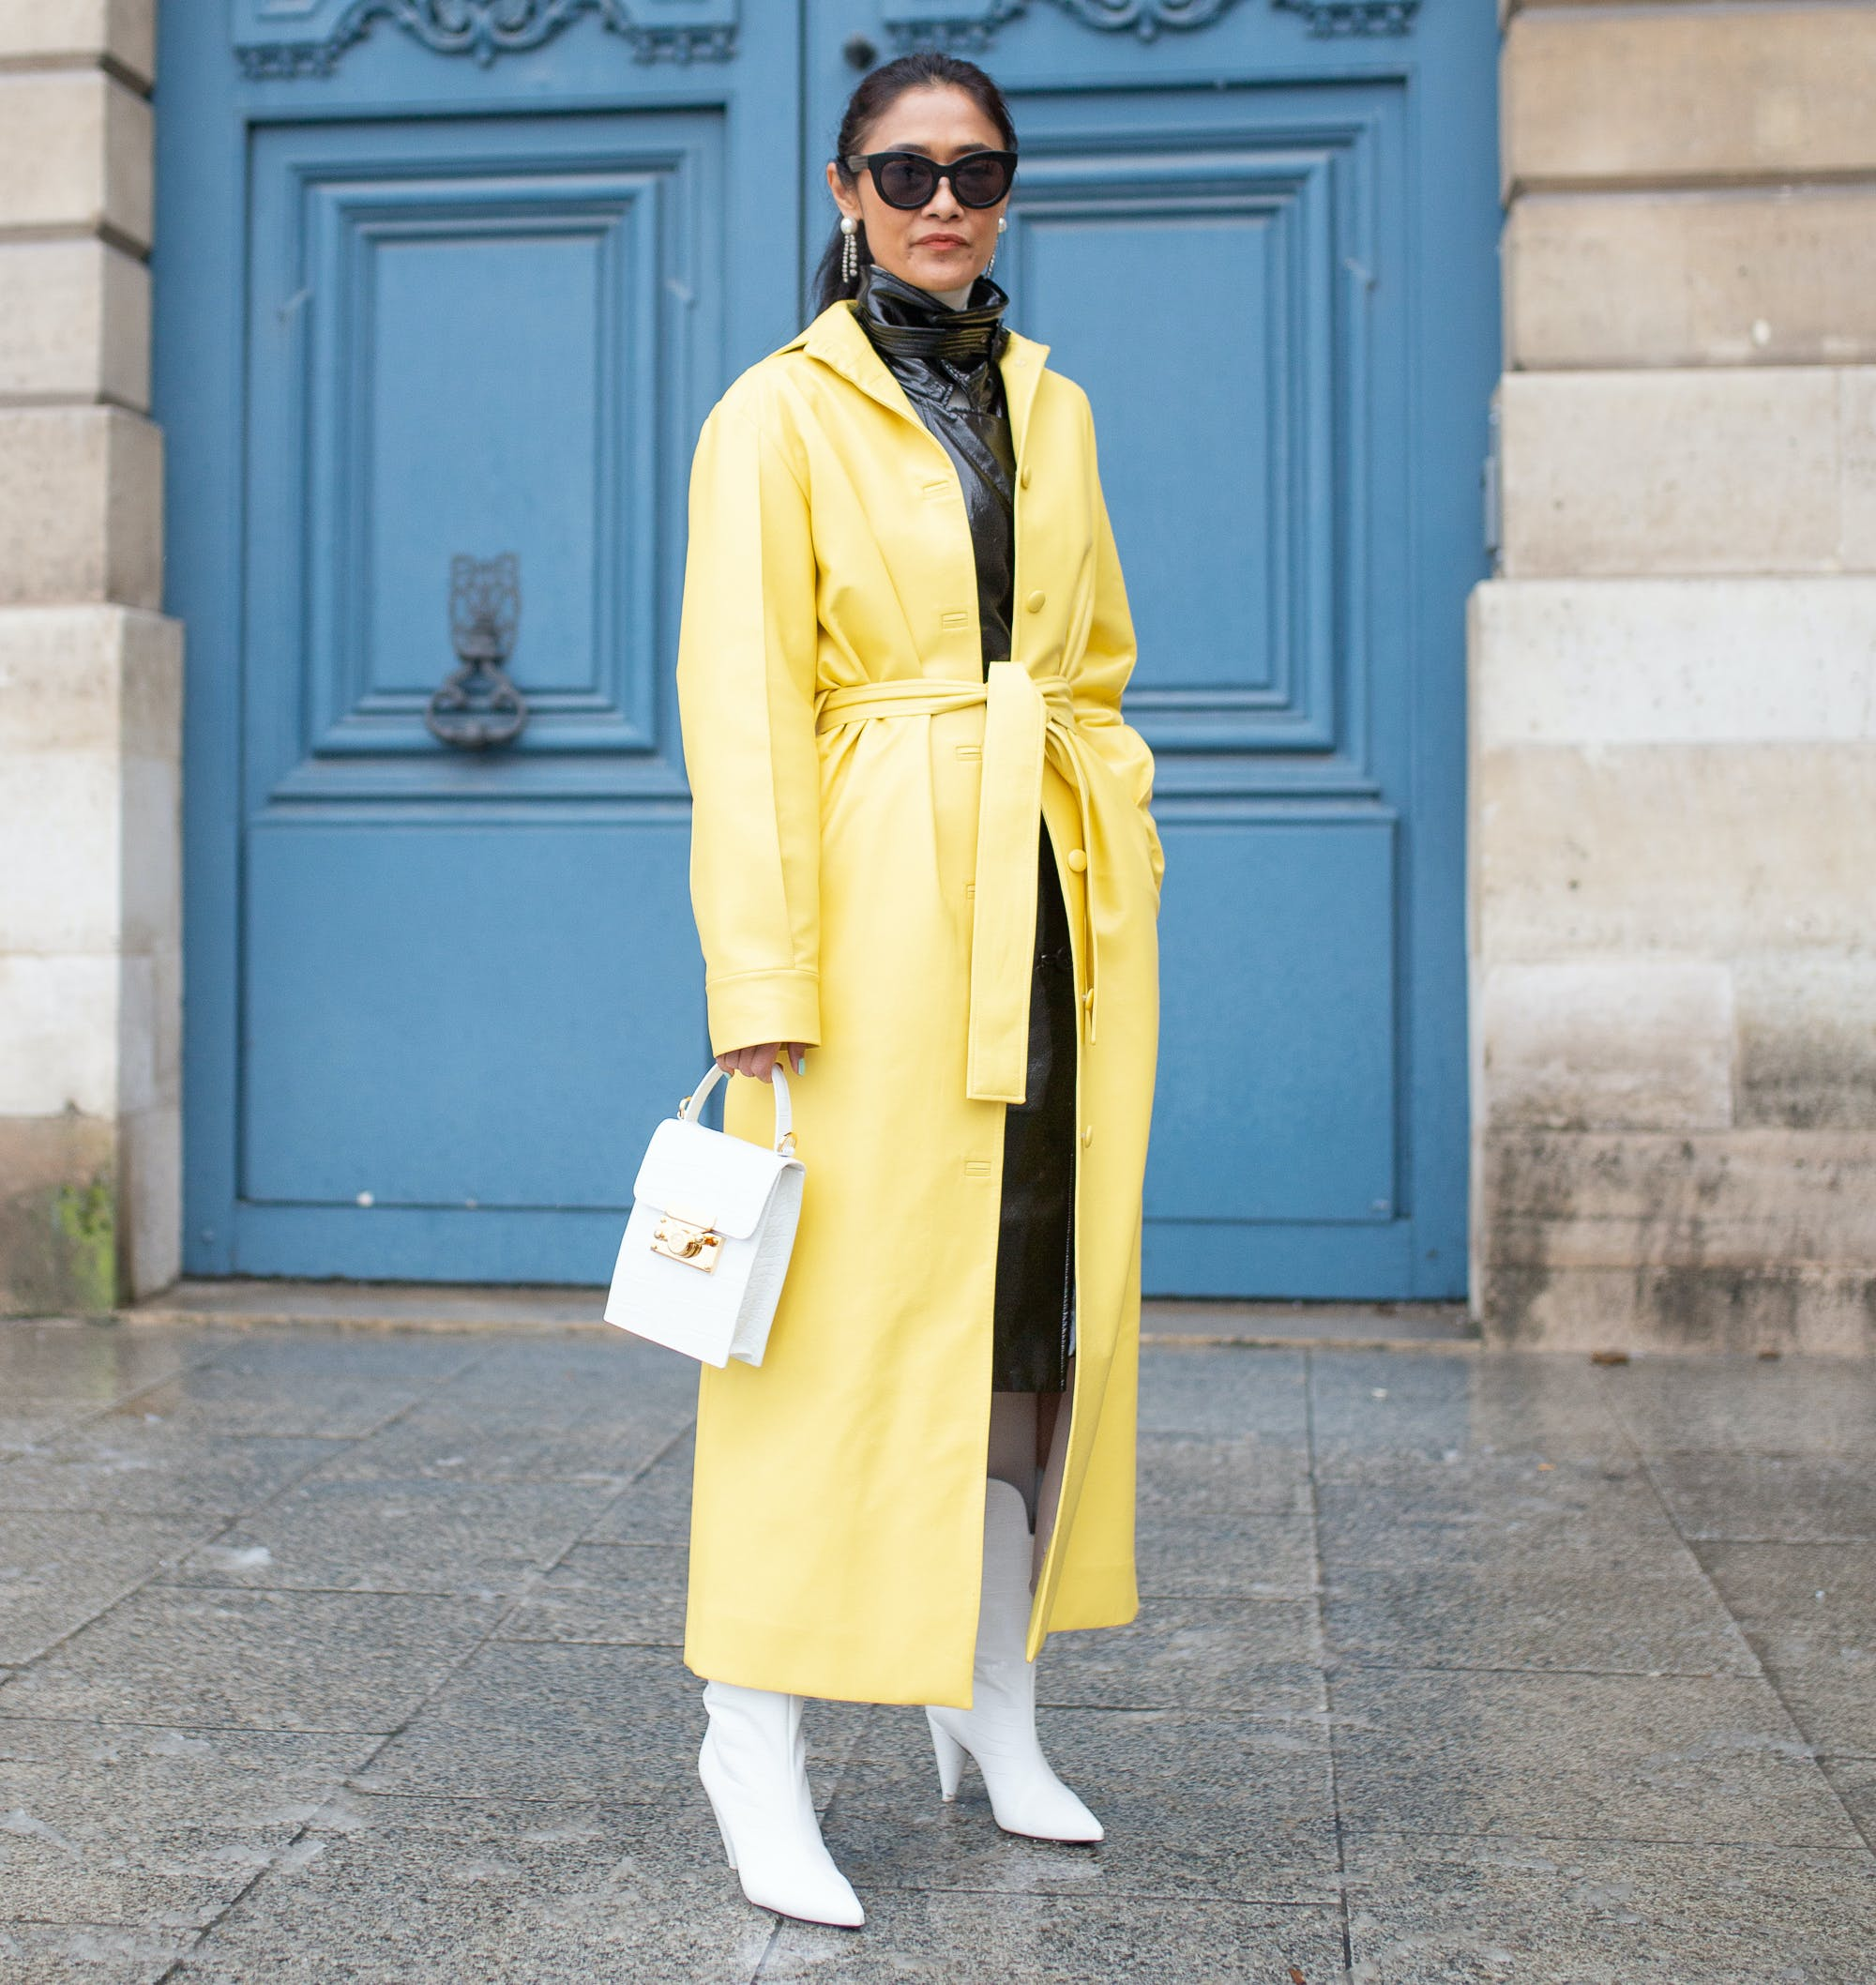 woman wearing a bright yellow coat with white accessories